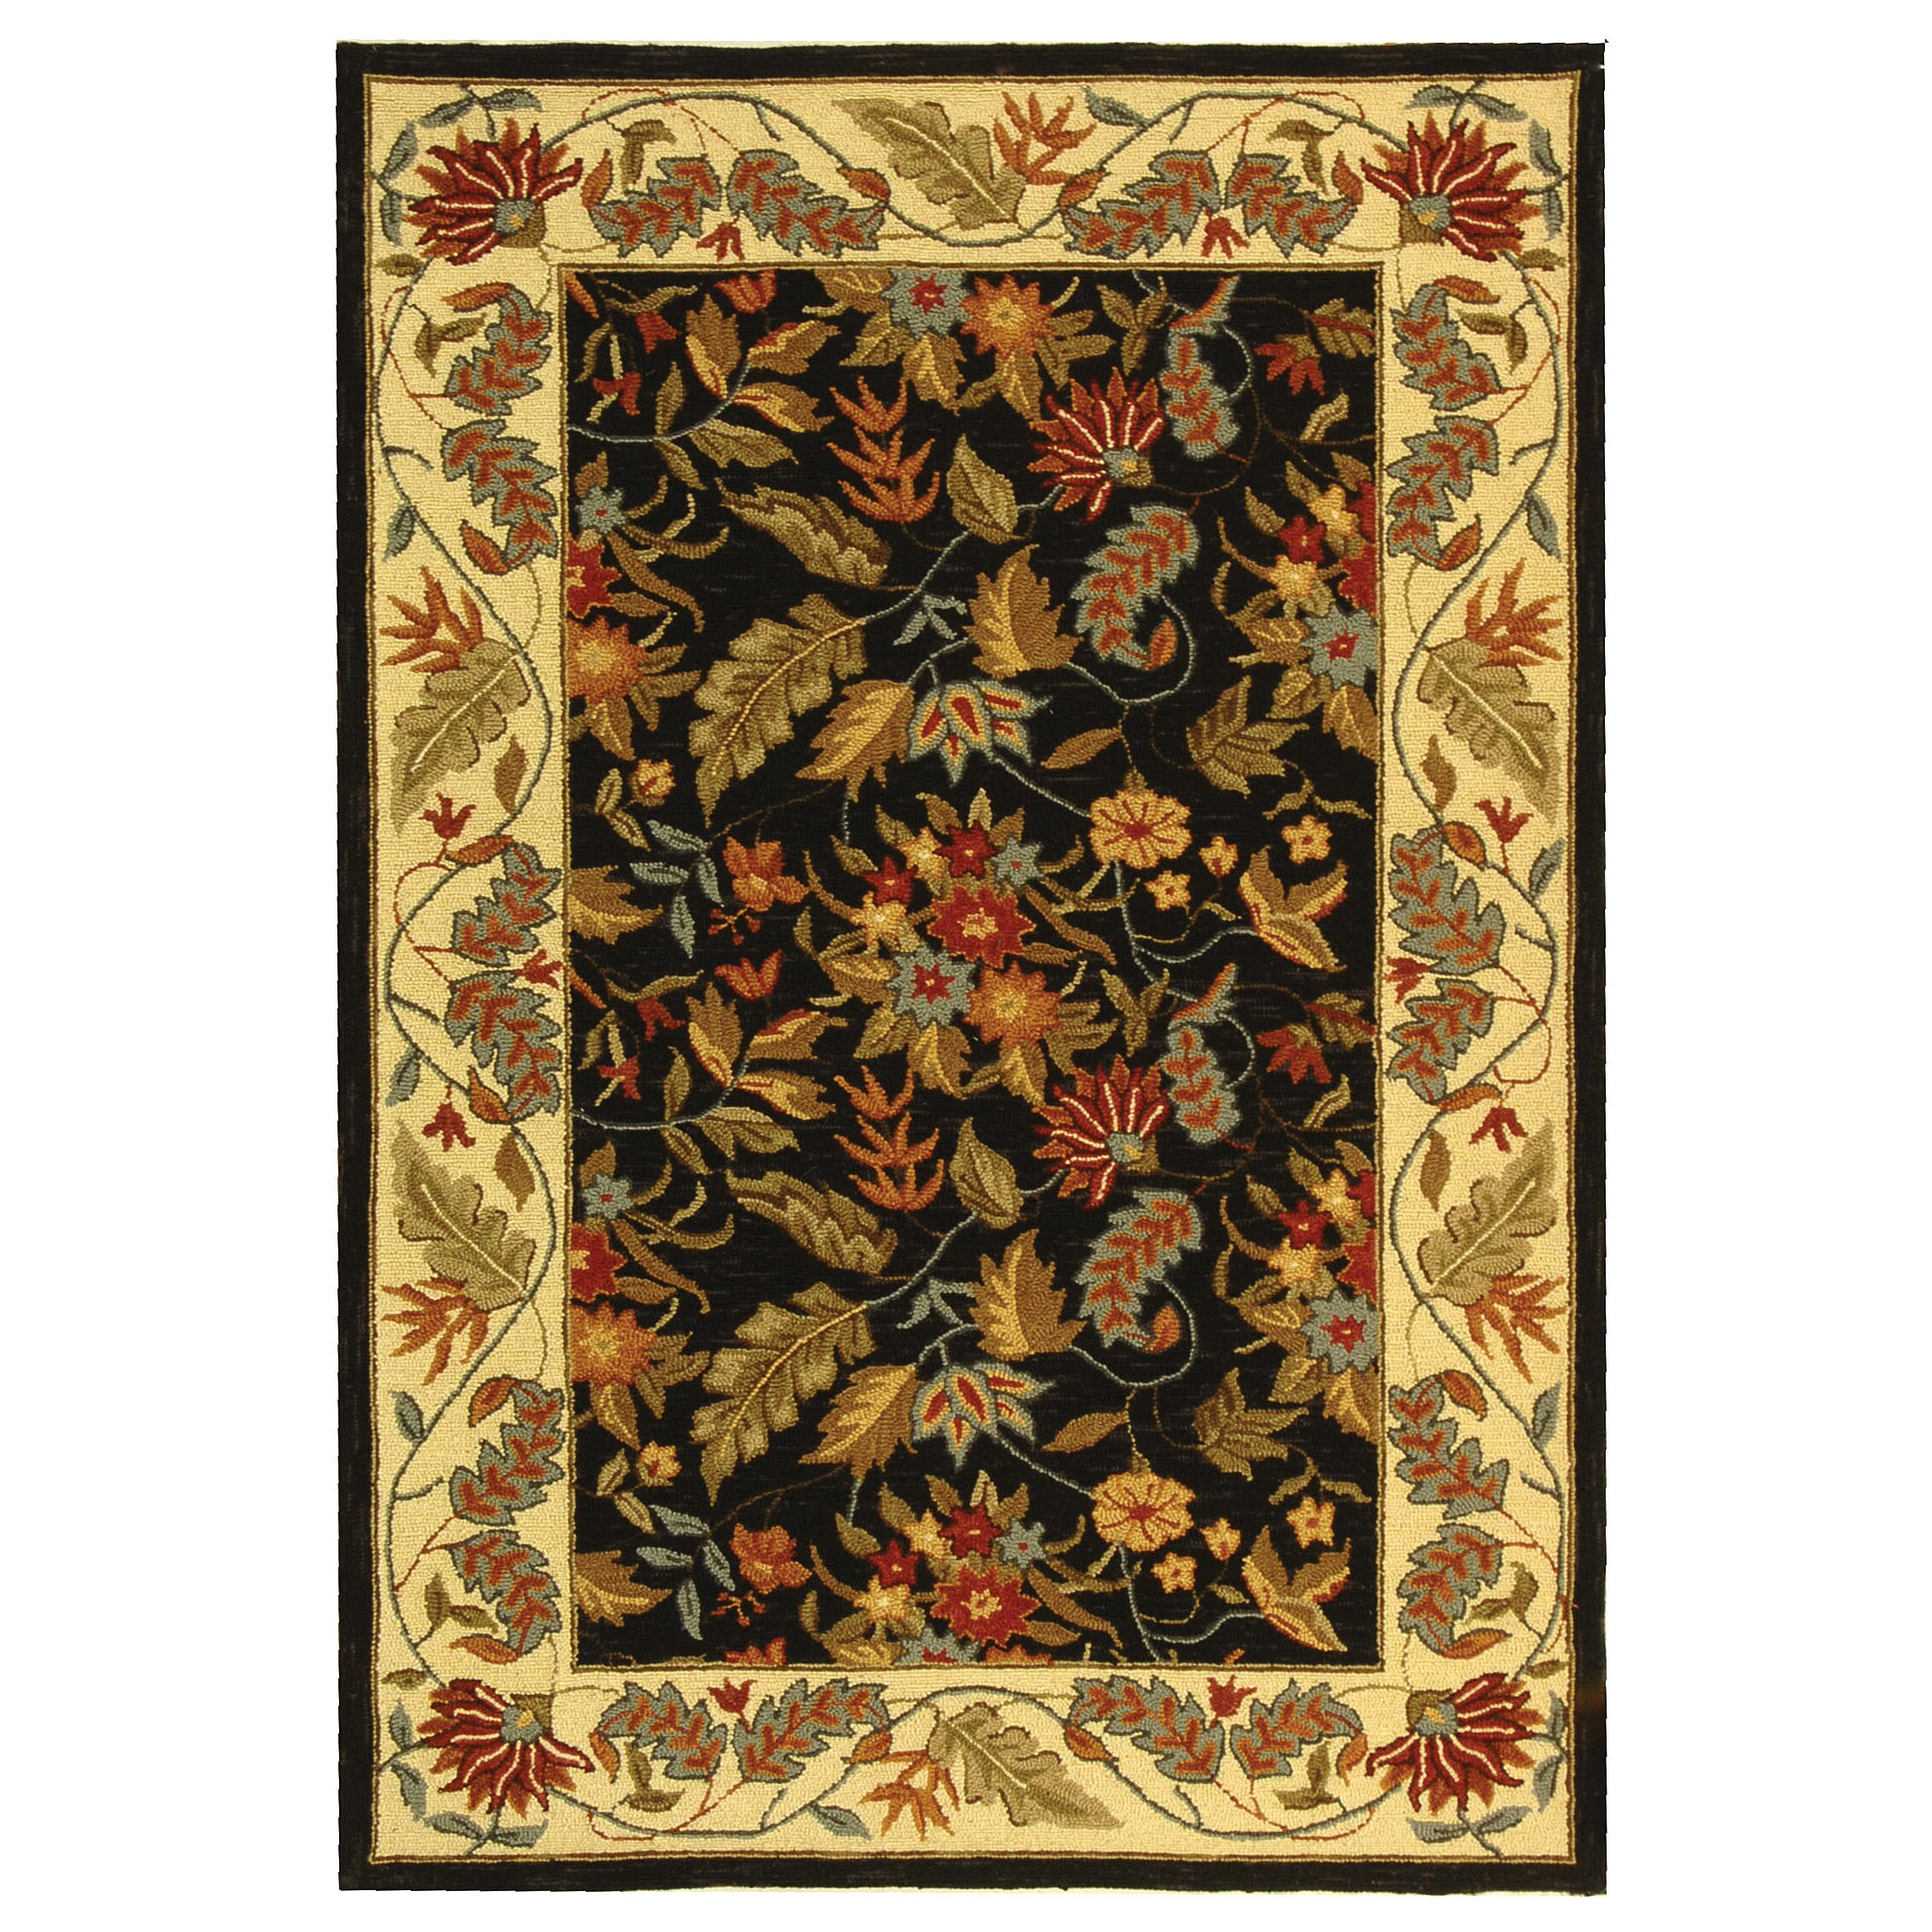 safavieh chelsea kathleen floral area rug cheerful home office rug wayfair safavieh